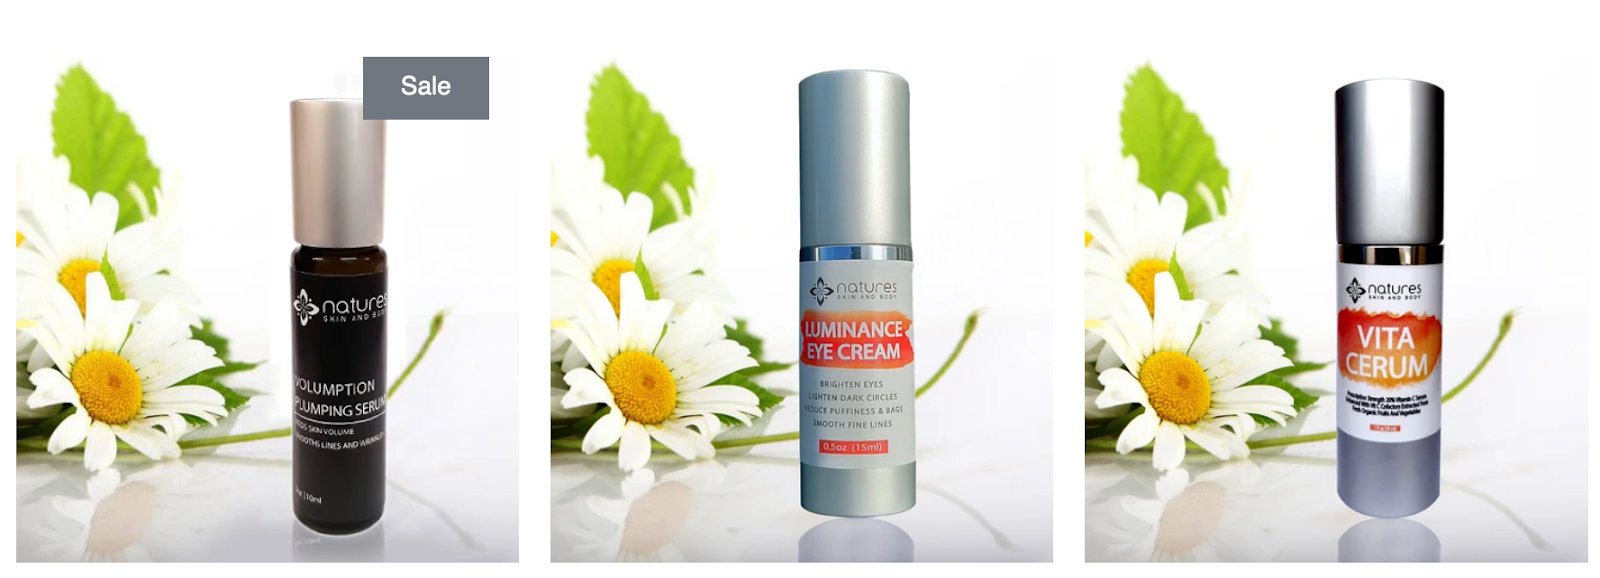 Nature Skin and Body   Collab Opps to Promote Skincare Products